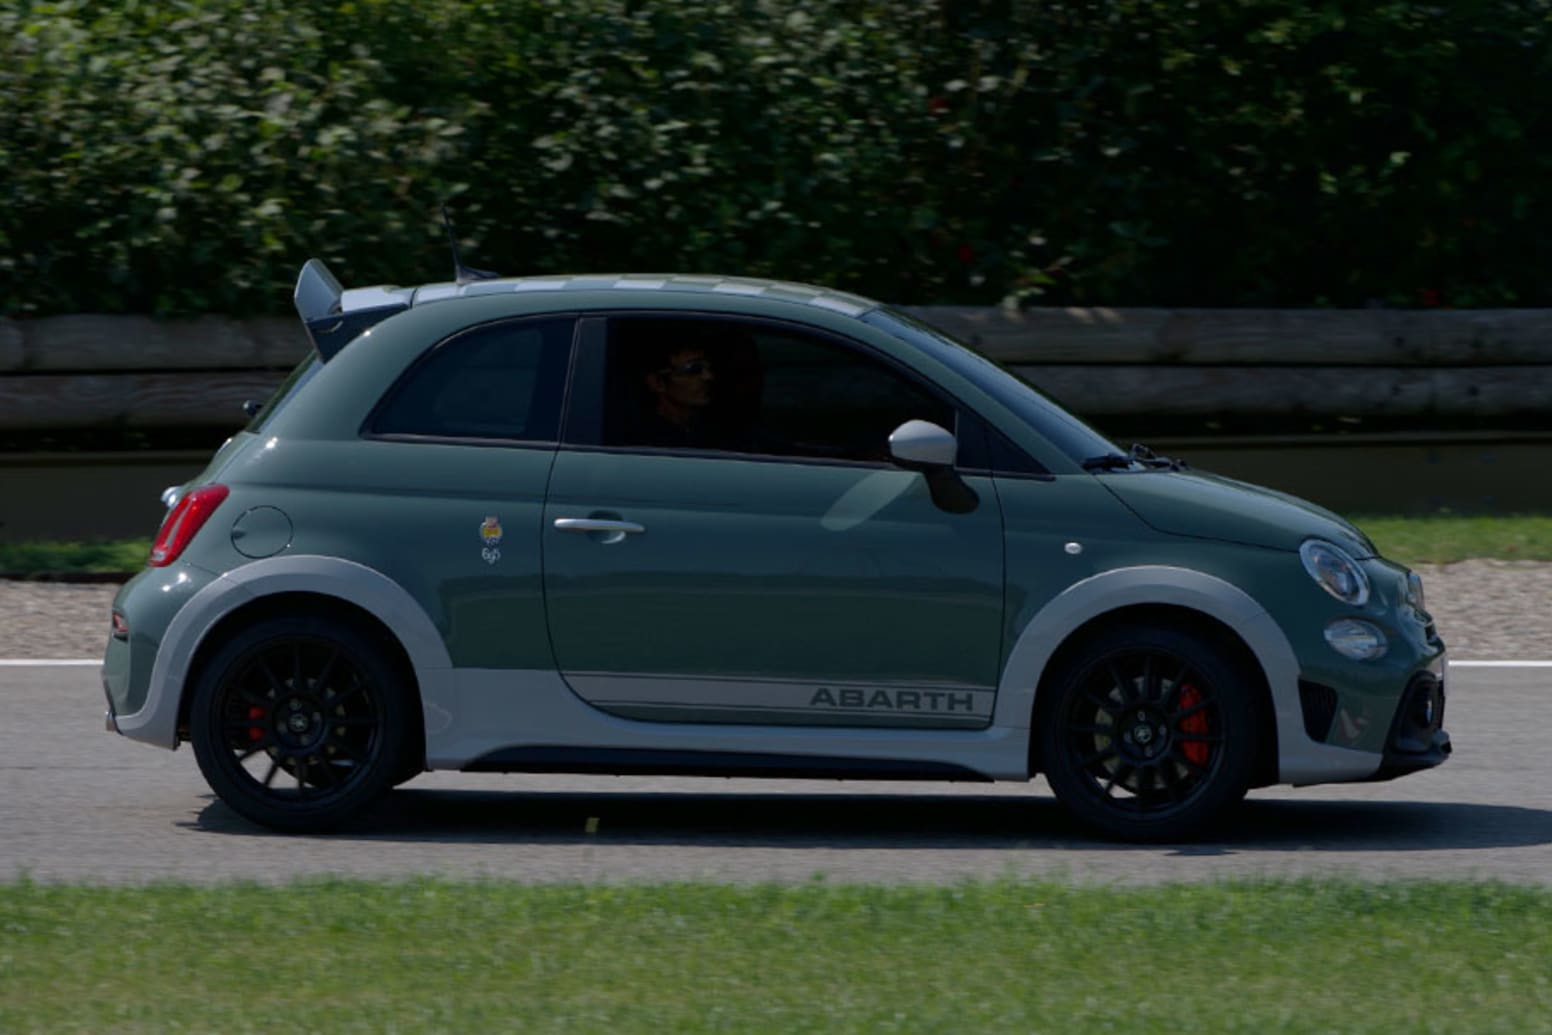 Abarth 695 Side Exterior